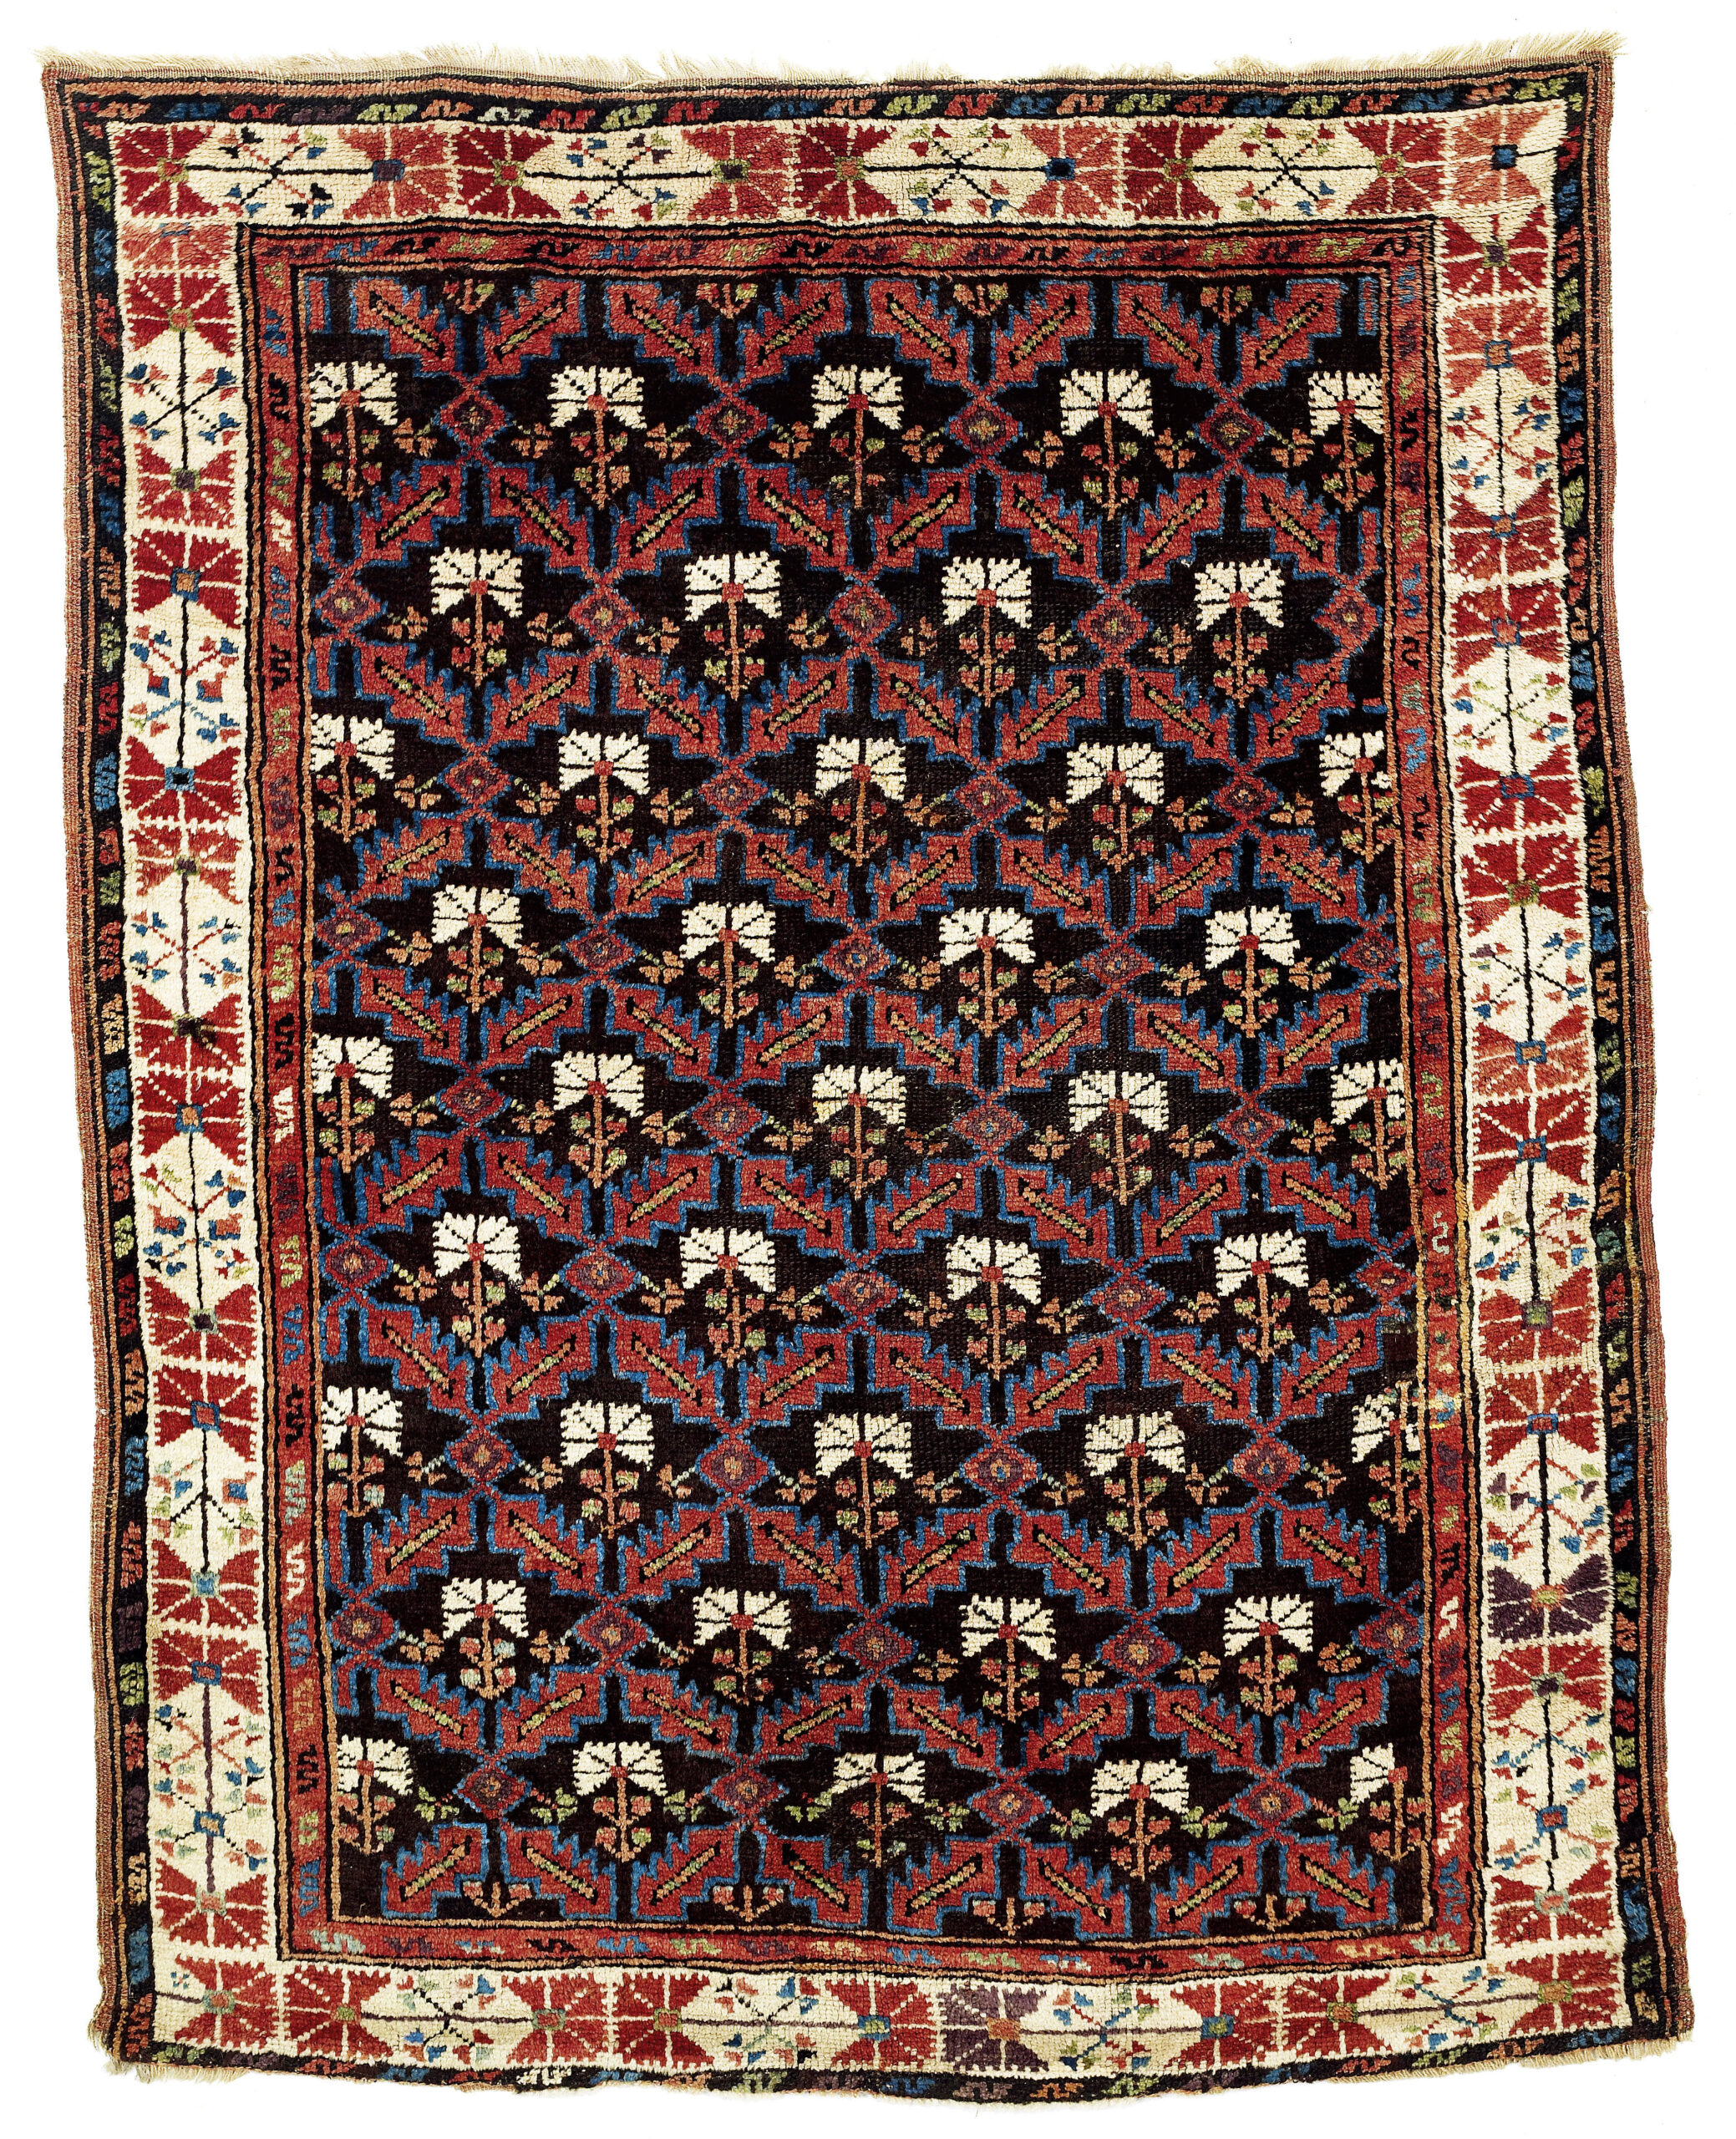 19th century Taşkale carpet from Karaman, Central Anatolia